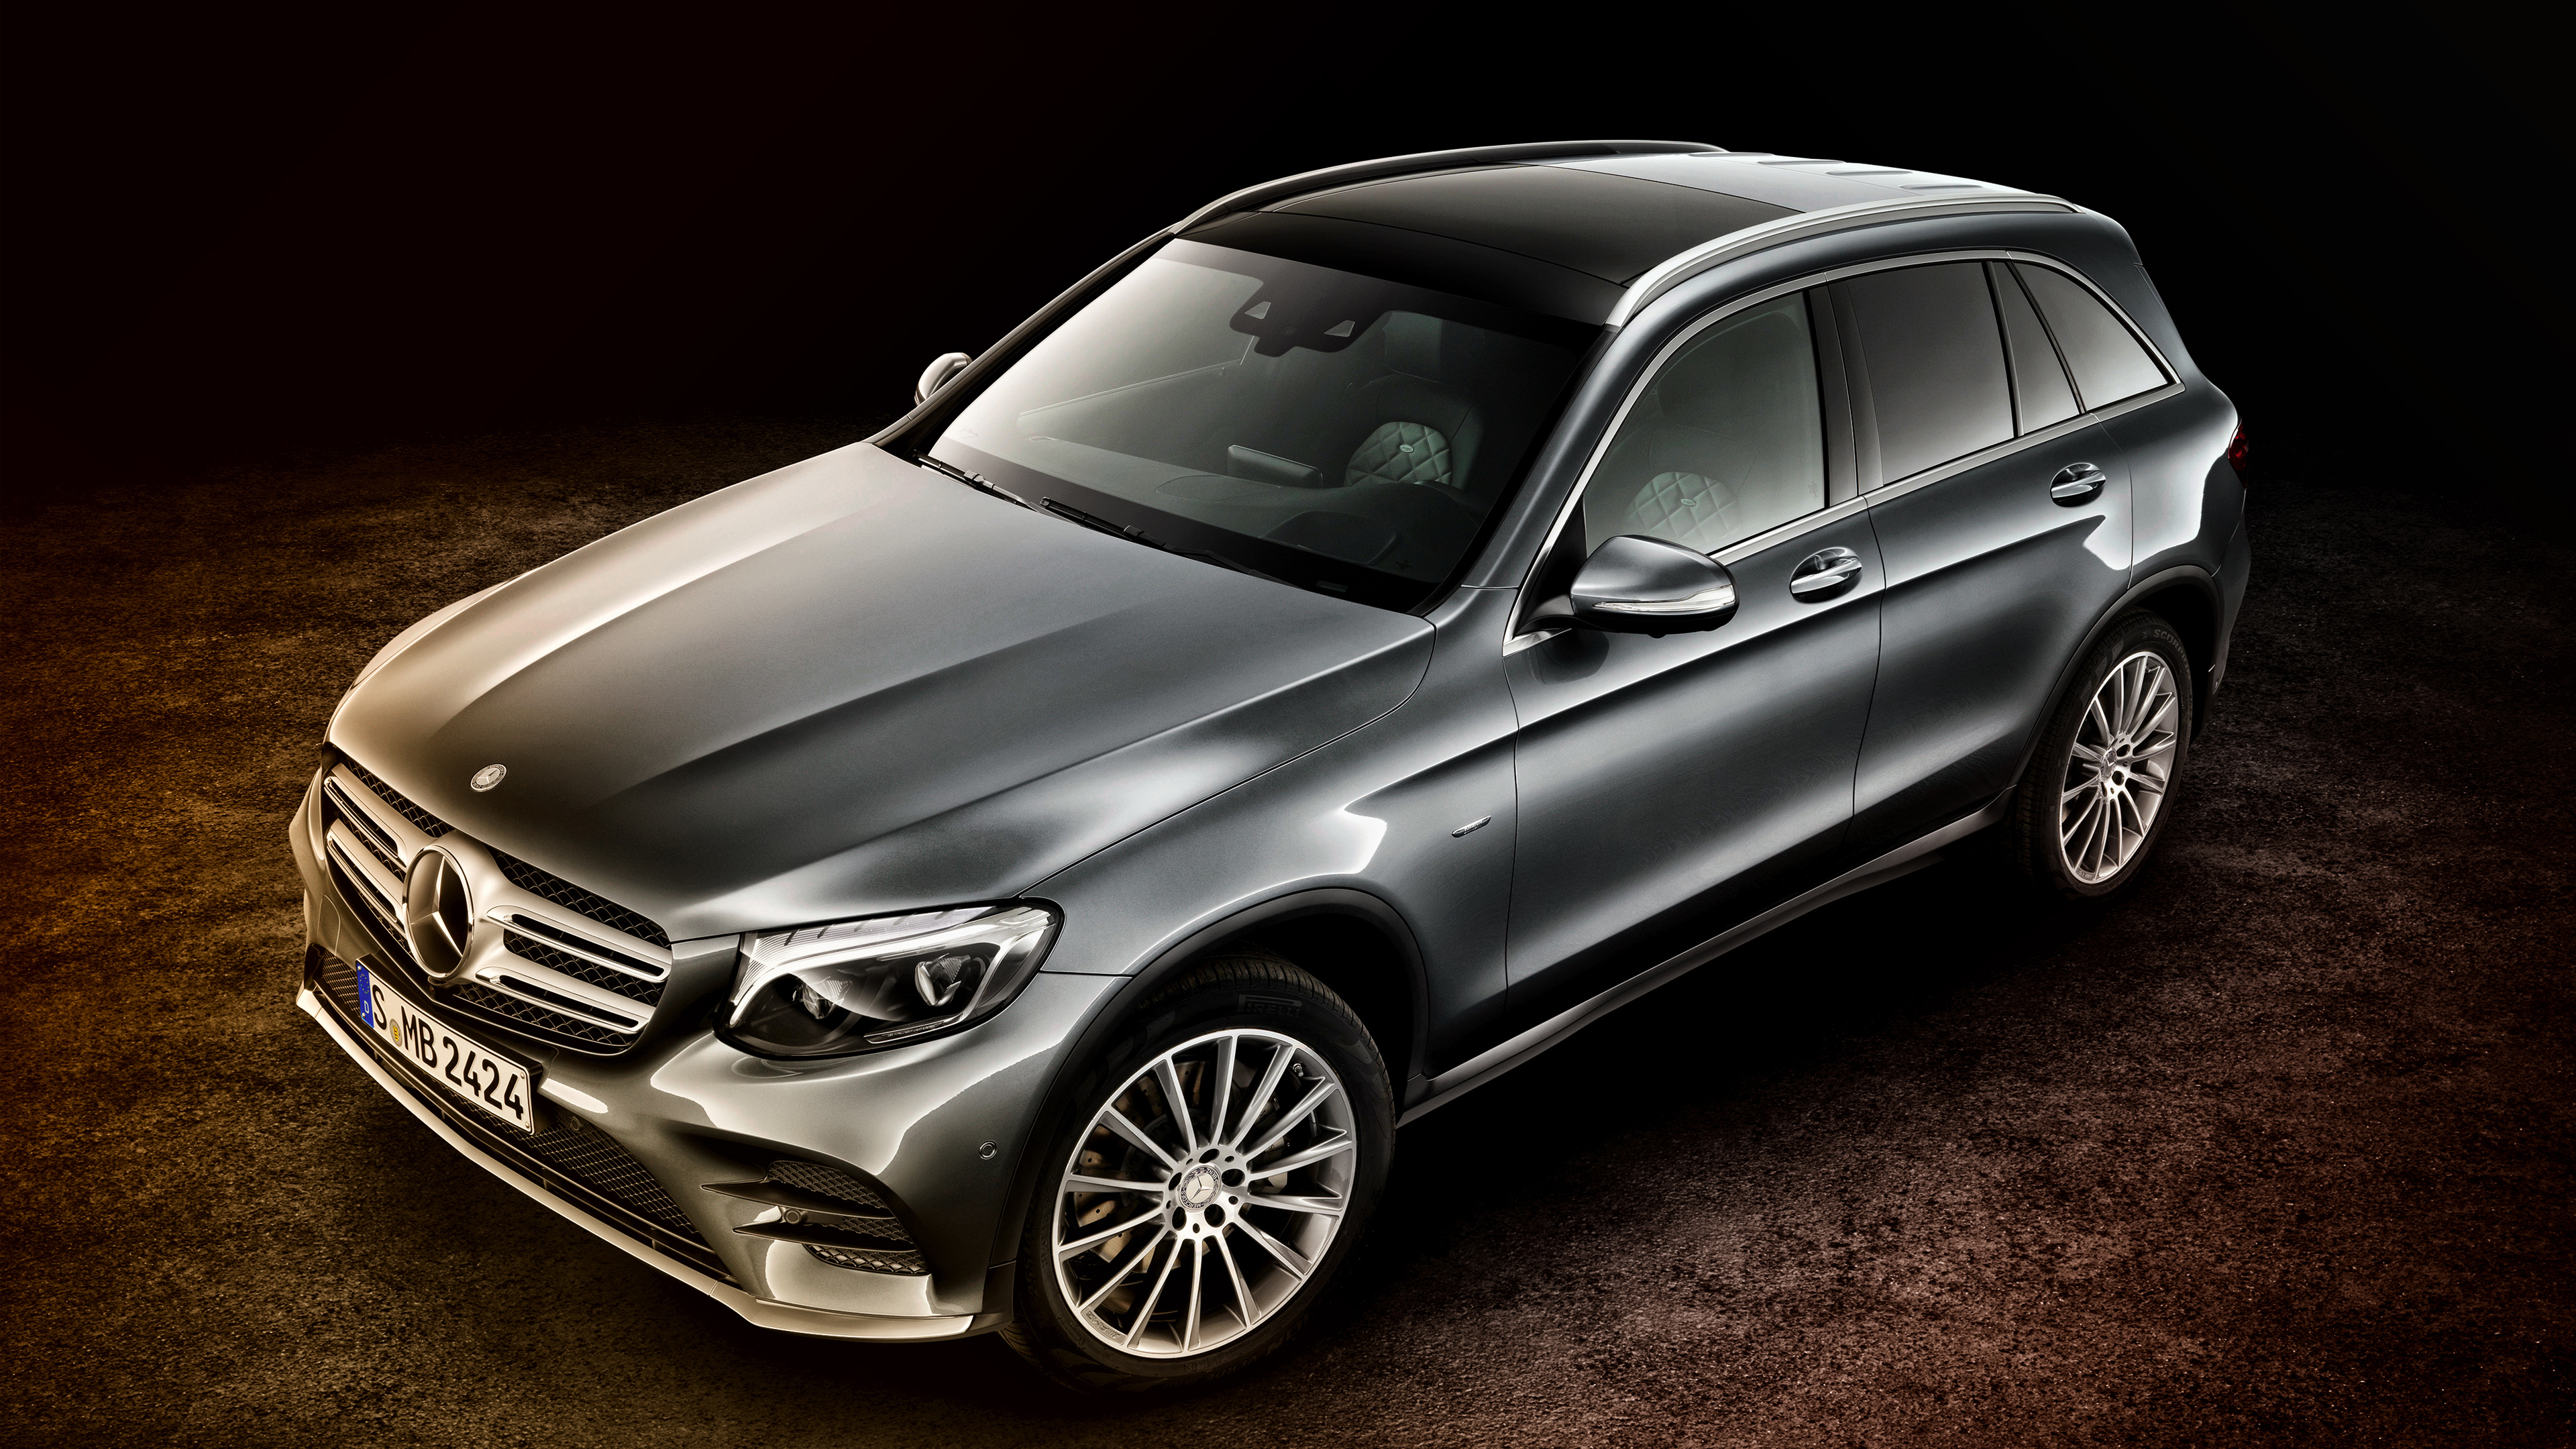 2015 Mercedes Benz GLC 350 Wallpaper | HD Car Wallpapers | ID #5897